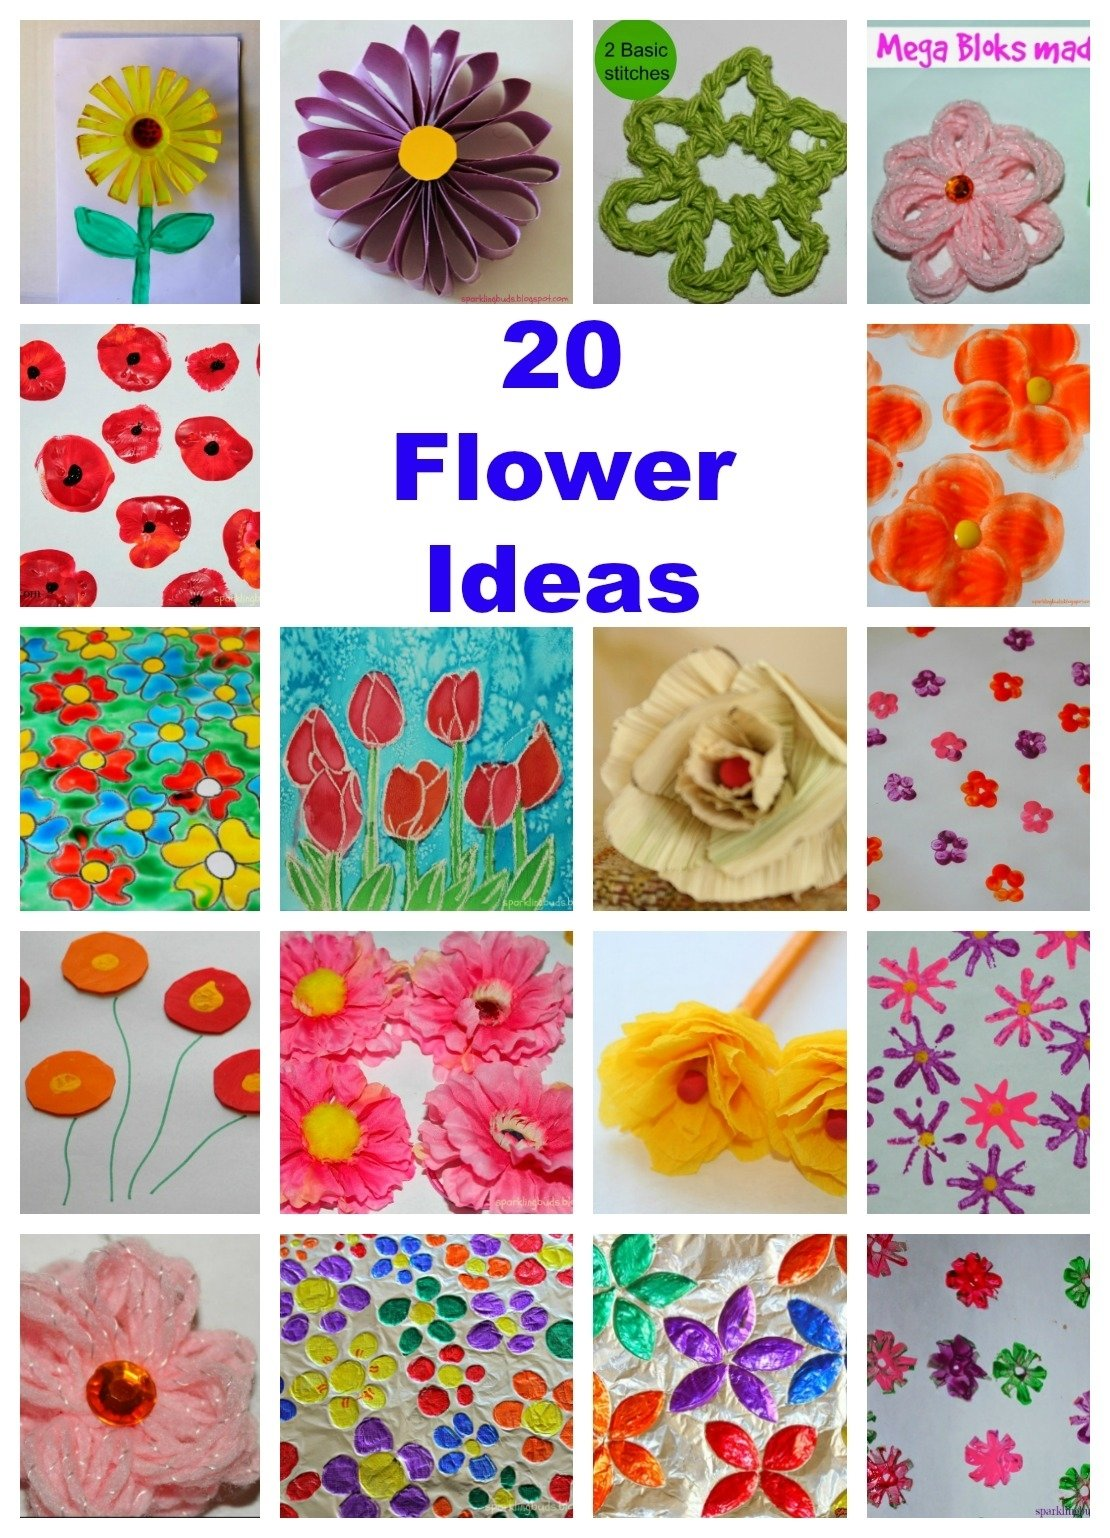 10 Fashionable Spring Arts And Crafts Ideas spring art ideas for kids archives sparklingbuds 2020